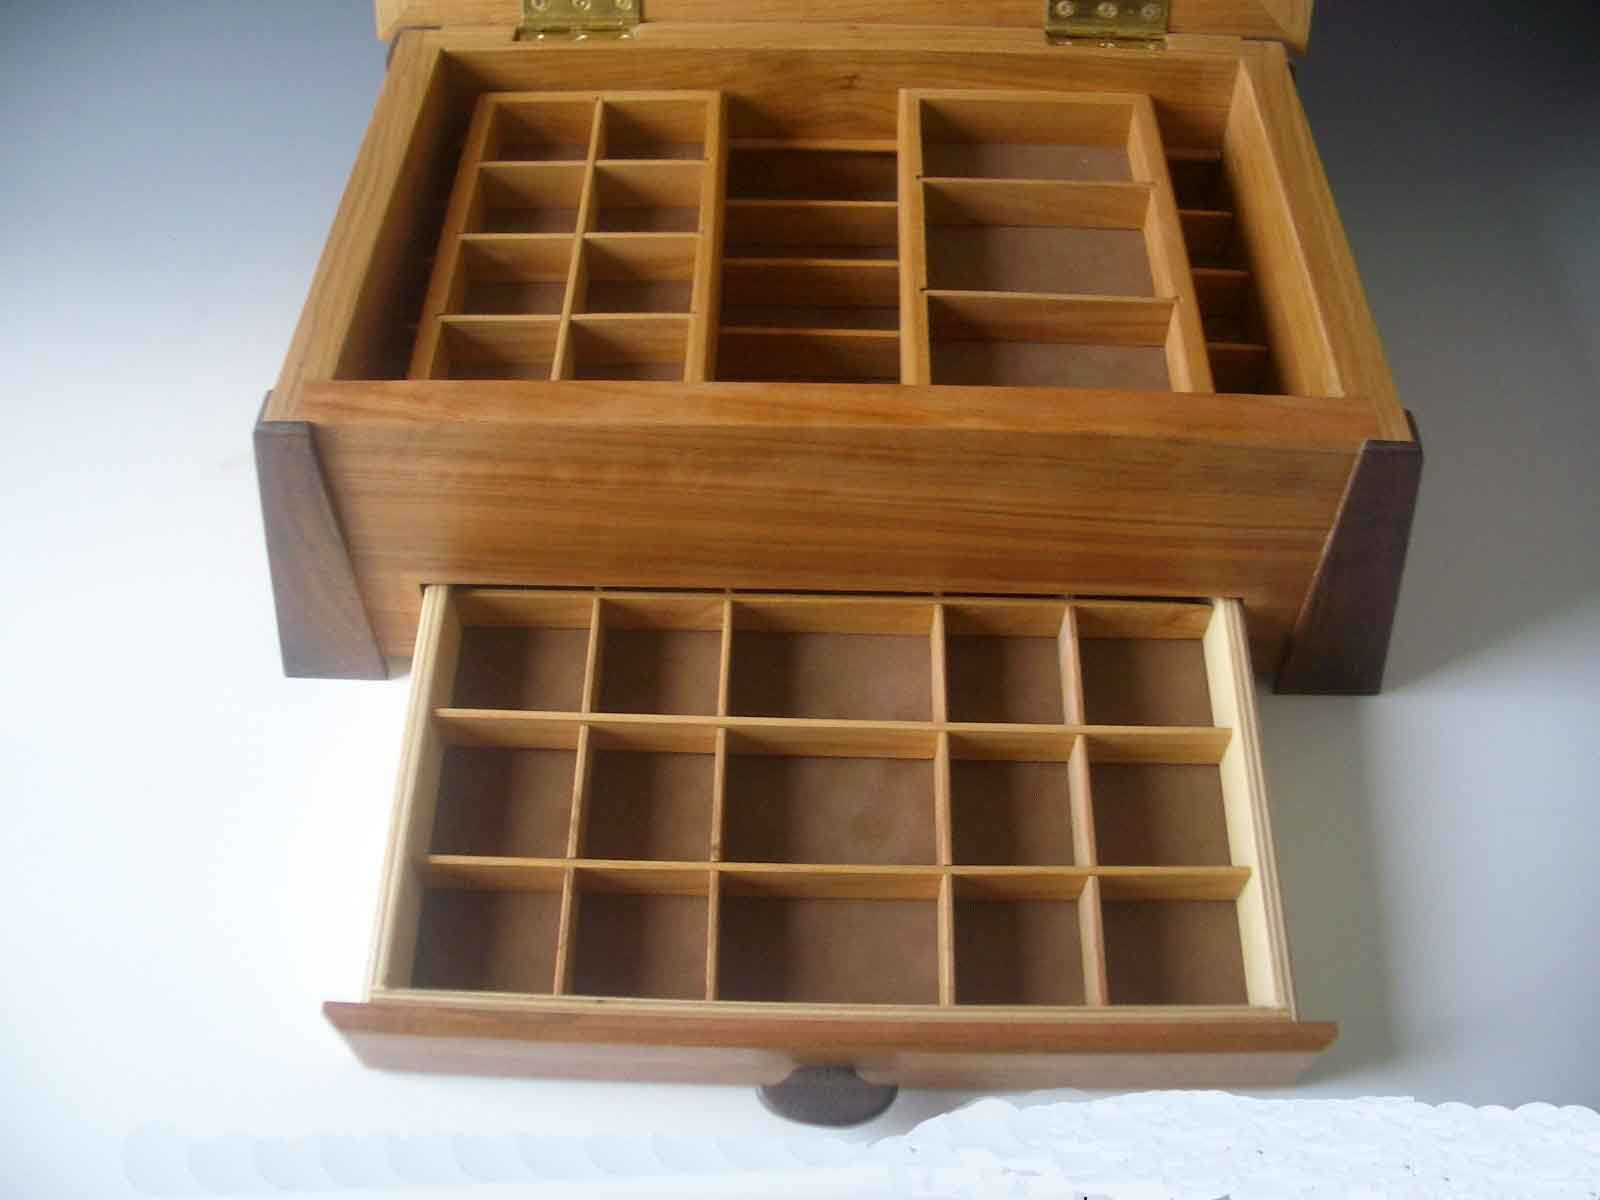 Handmade solid wood jewelry boxes made of various exotic woods; this example shows inside of box with drawer open and dividers for jewelry